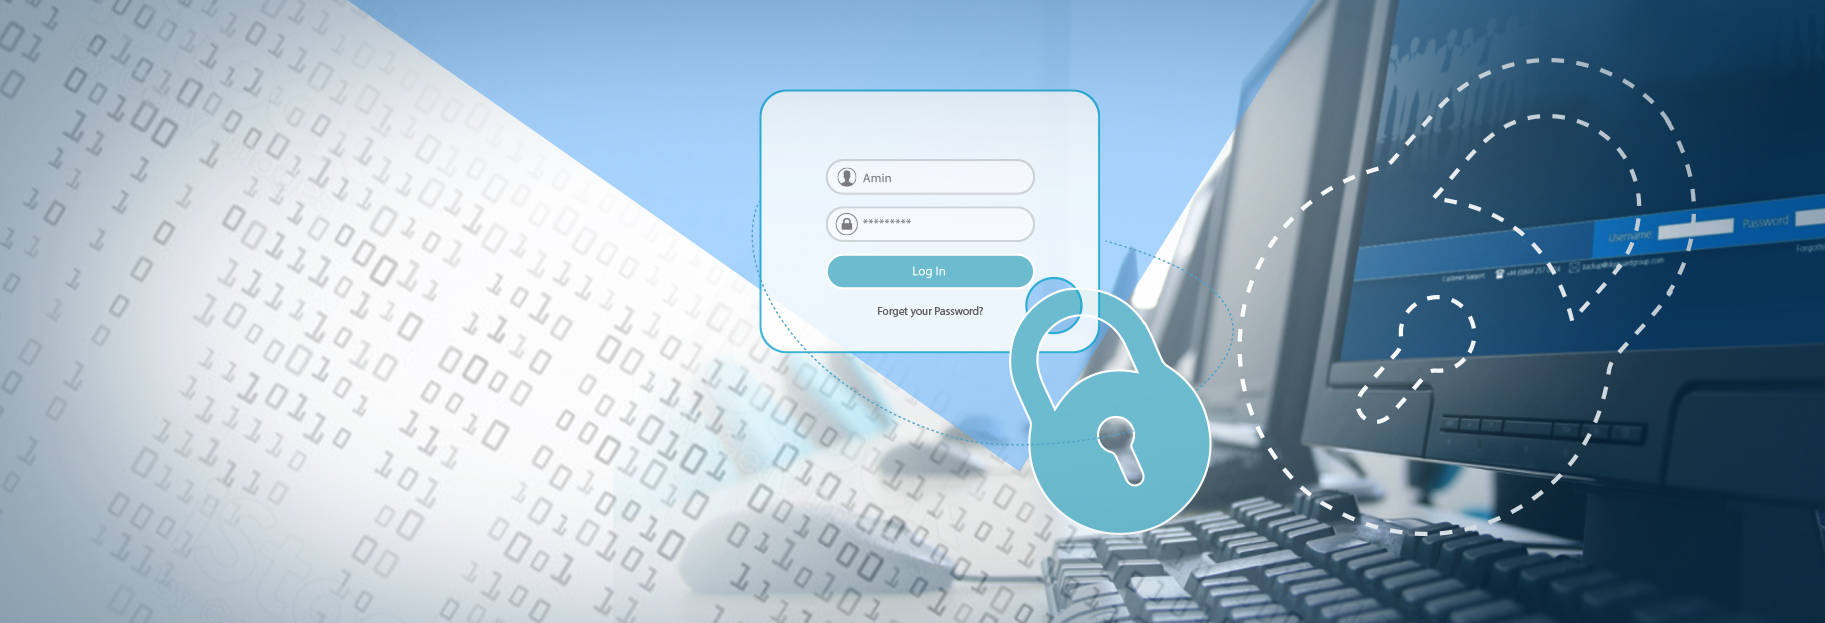 Two Factor Authentication: An Additional Lock on Your Lock